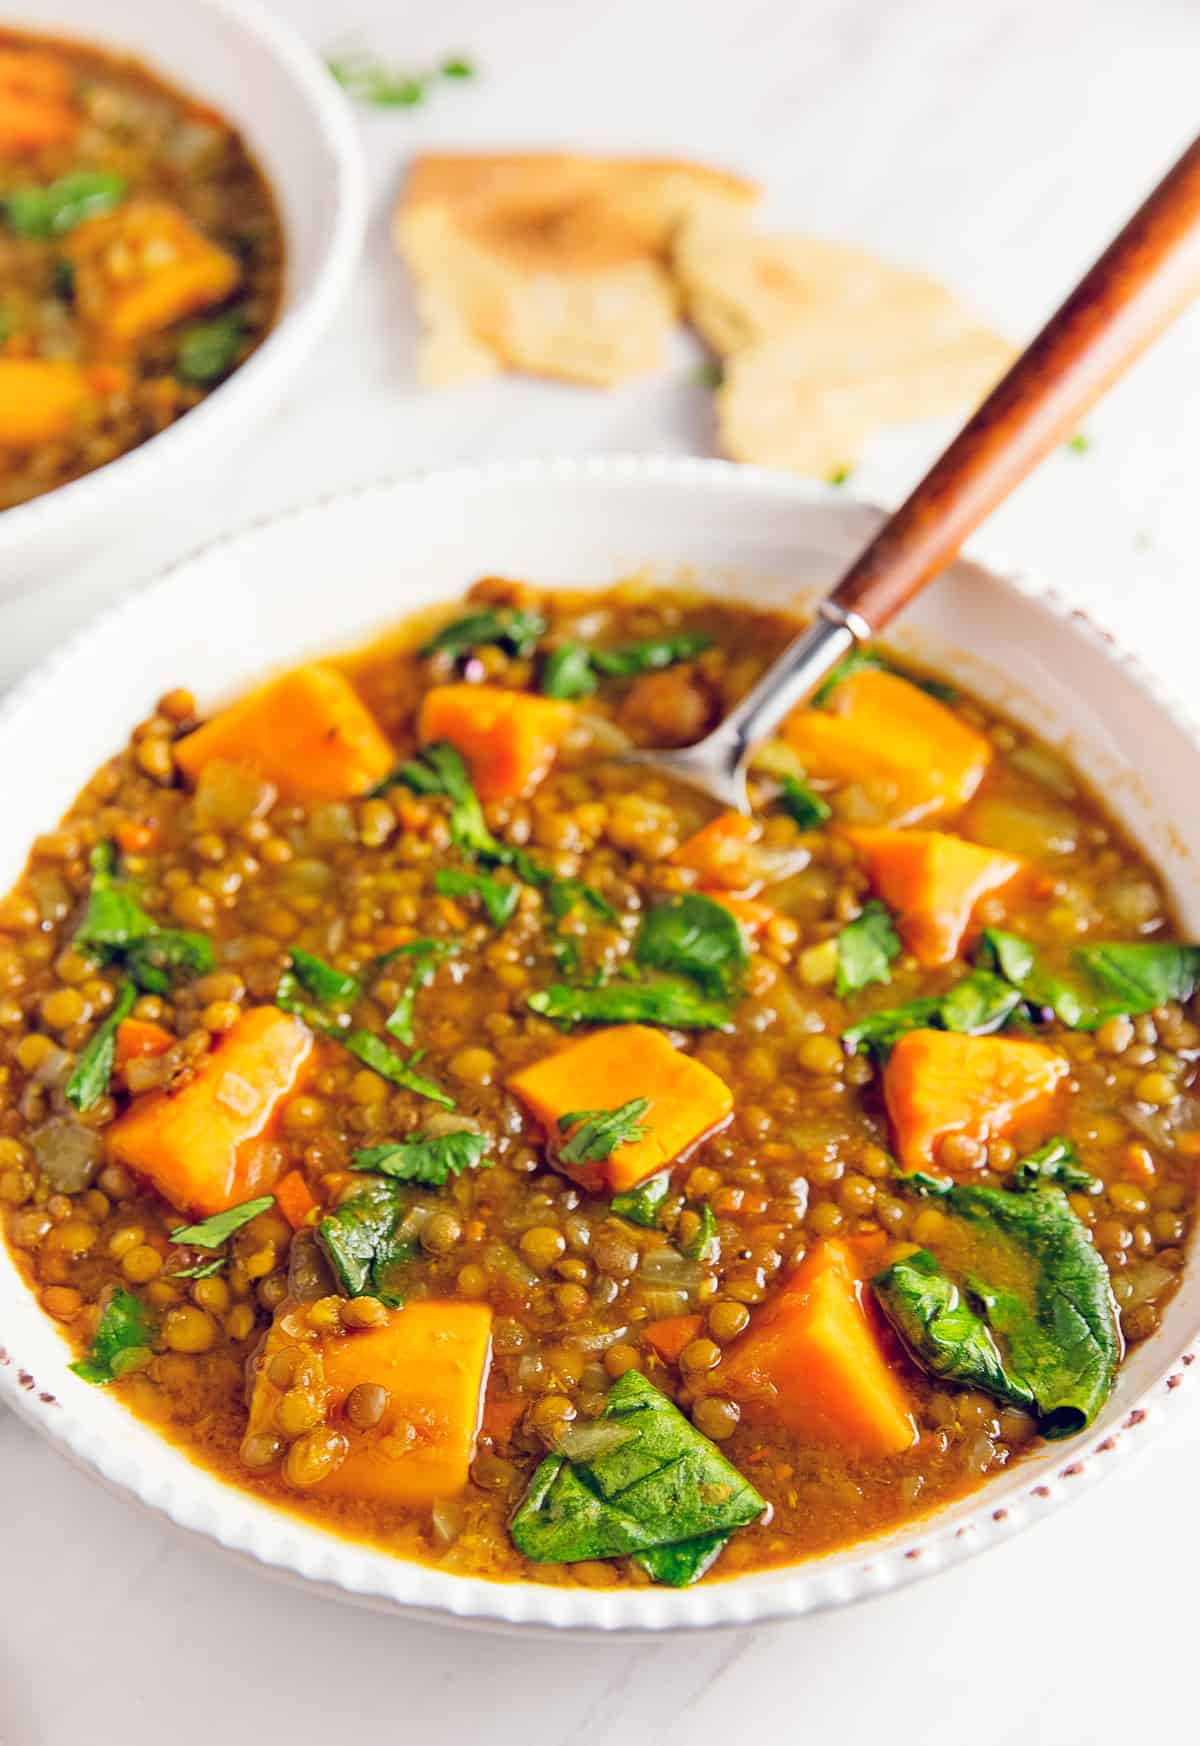 Cuisine Yam Moroccan Sweet Potato Lentil Stew Monkey And Me Kitchen Adventures